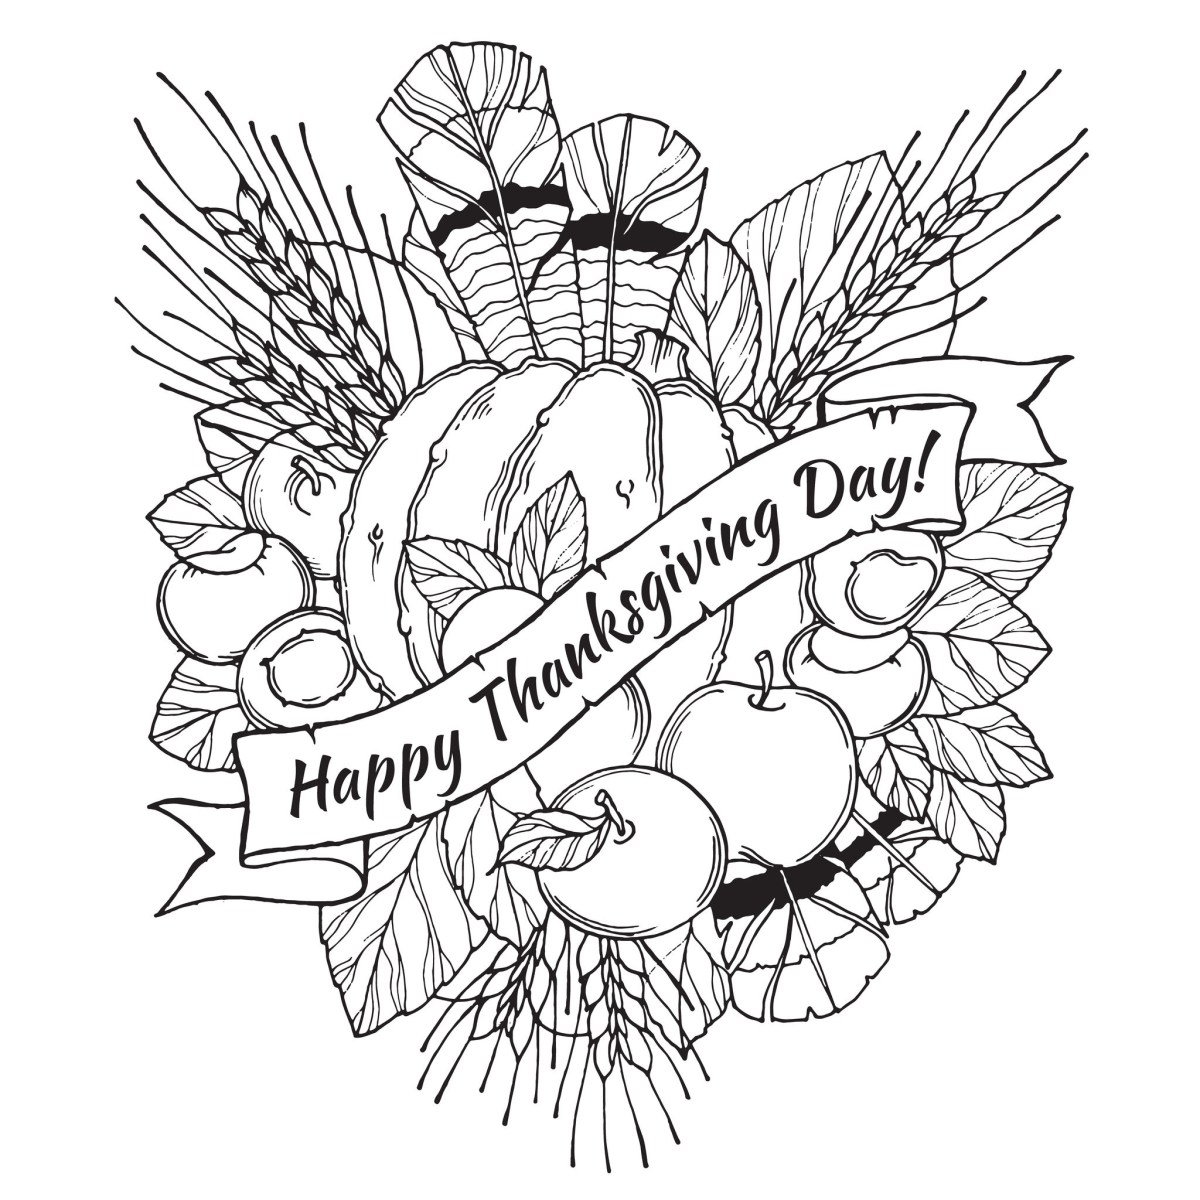 47 Coloring Pages For Adults Thanksgiving Download Free Images